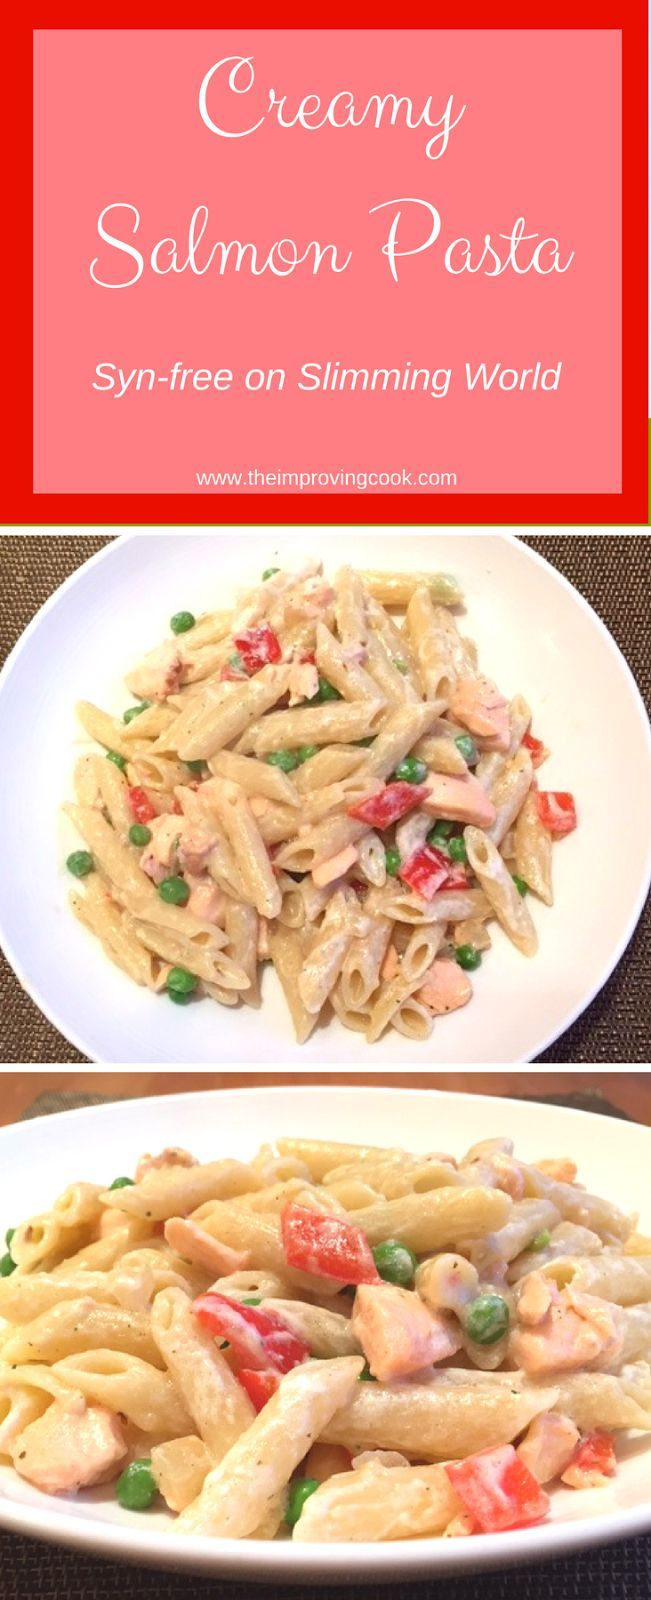 Creamy Salmon Pasta- syn-free on Slimming World, this is a great quick dinner recipe that comes in at around 500 calories. It is very filling and easy to make.